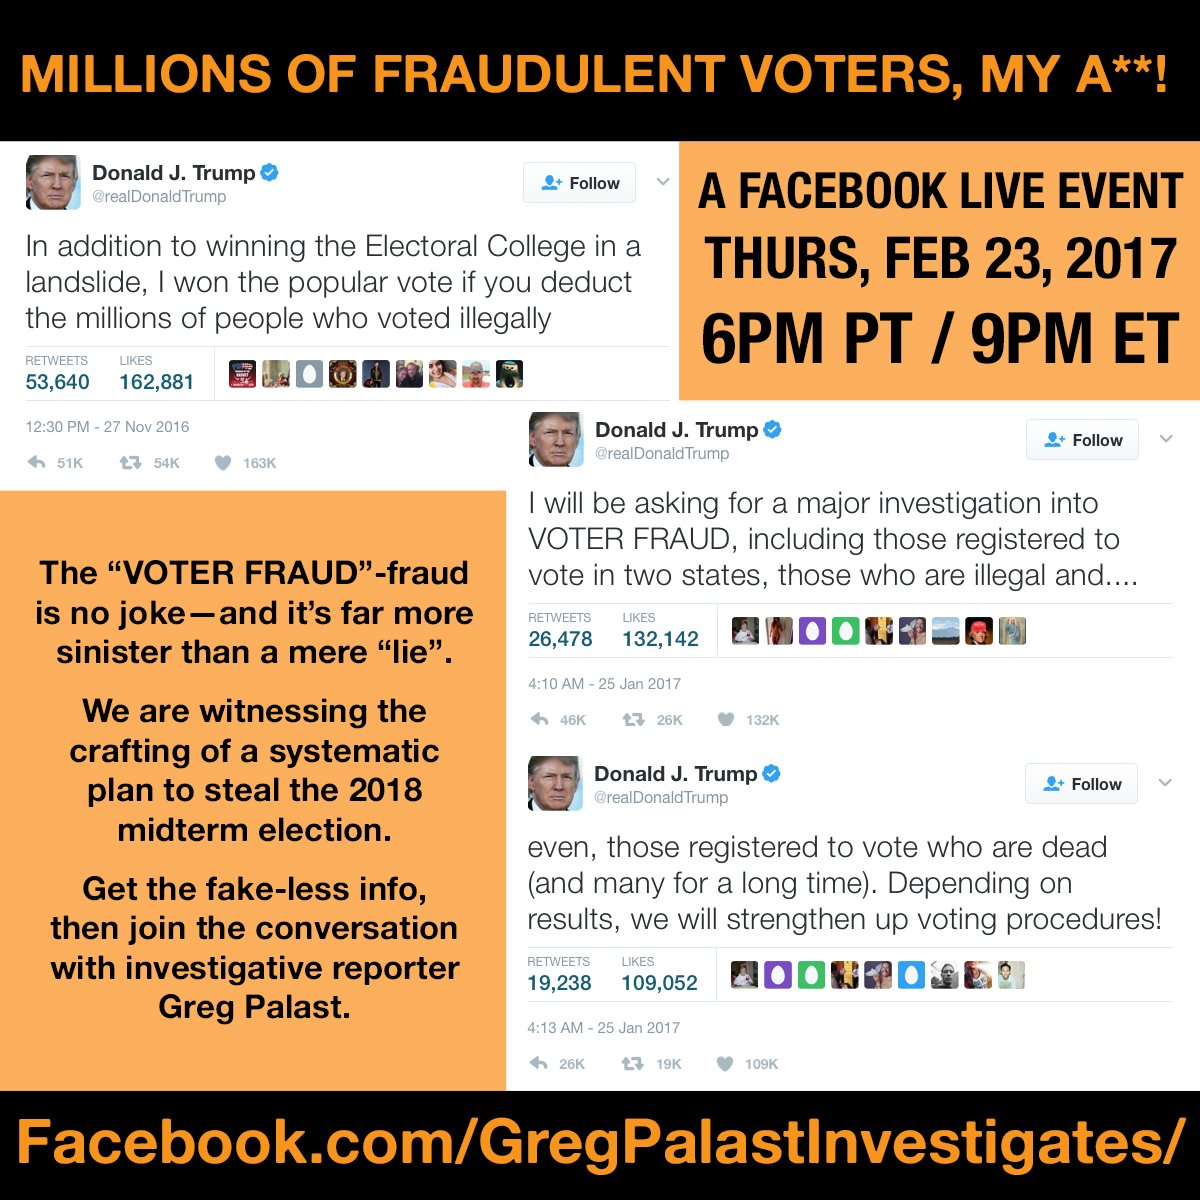 Tune in to our Facebook LIVE event tomorrow at 6PM PT / 9PM ET.   https://www. facebook.com/GregPalastInve stigates/ &nbsp; …   #Trump #ElectionFraud #Crosscheck #TrumpStoleIt<br>http://pic.twitter.com/RKOF0QBR8x